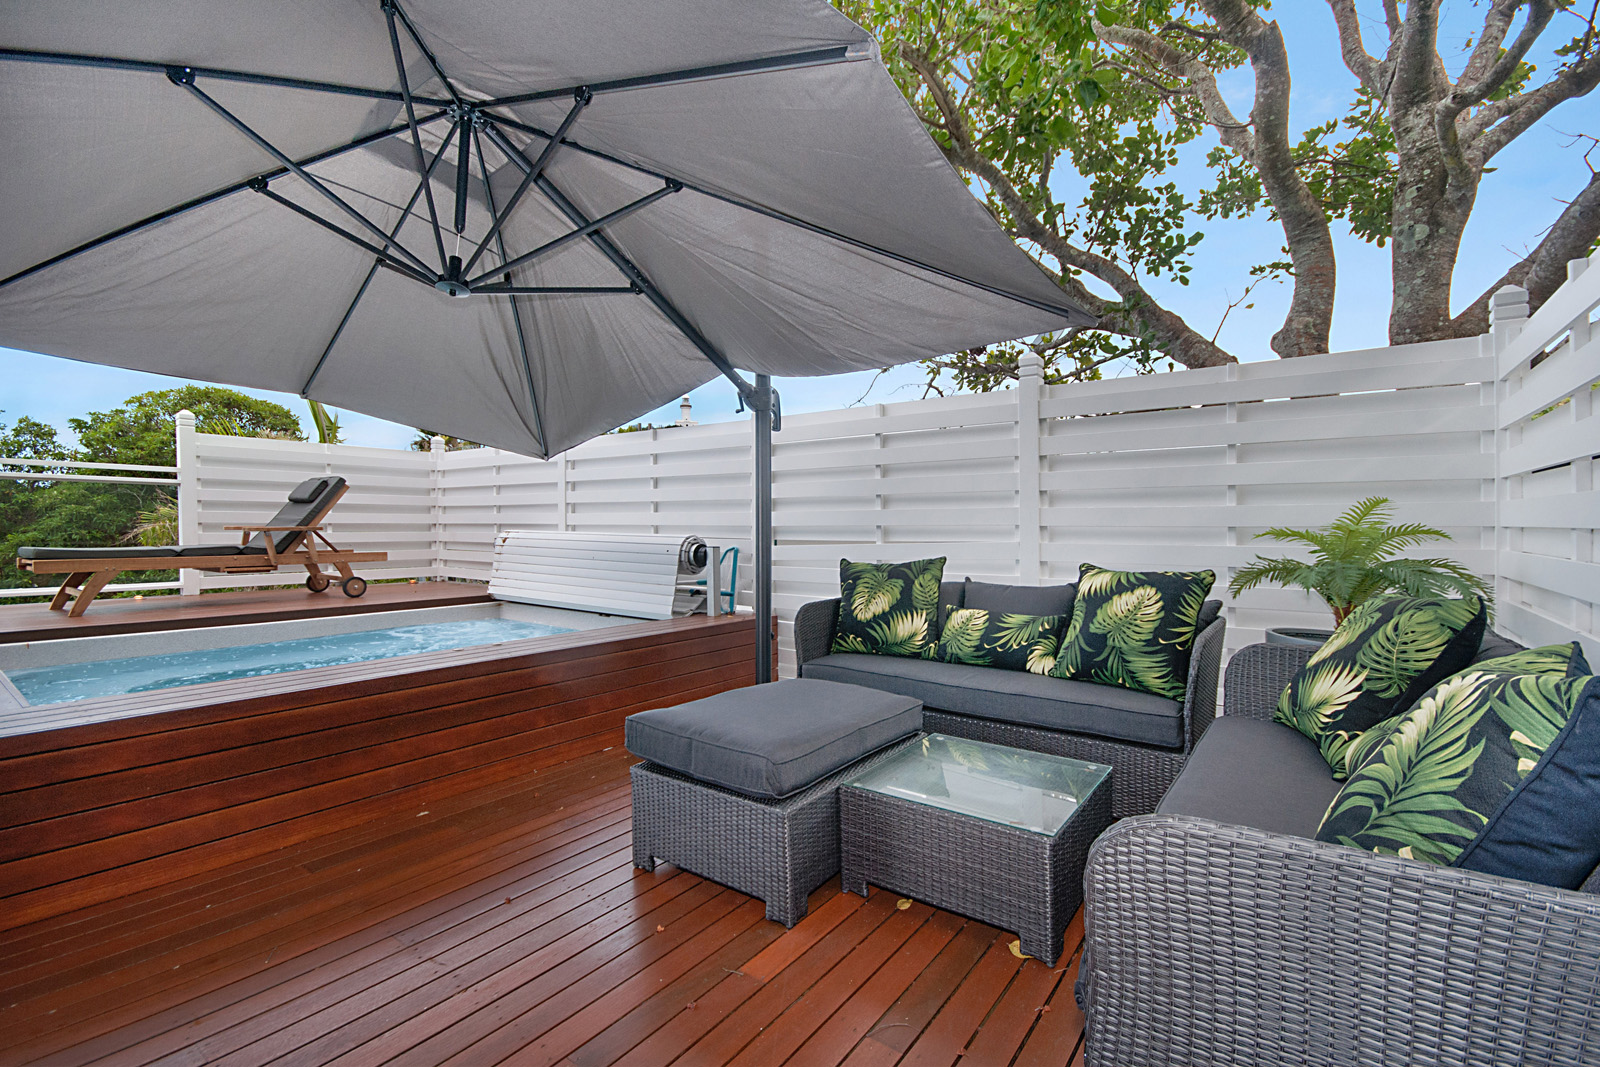 Cherie-Barber_Renovating-For-Profit_GET-THE-LOOK-Cherie-Barbers-Byron-Bay-Holiday-Home_Spa-After